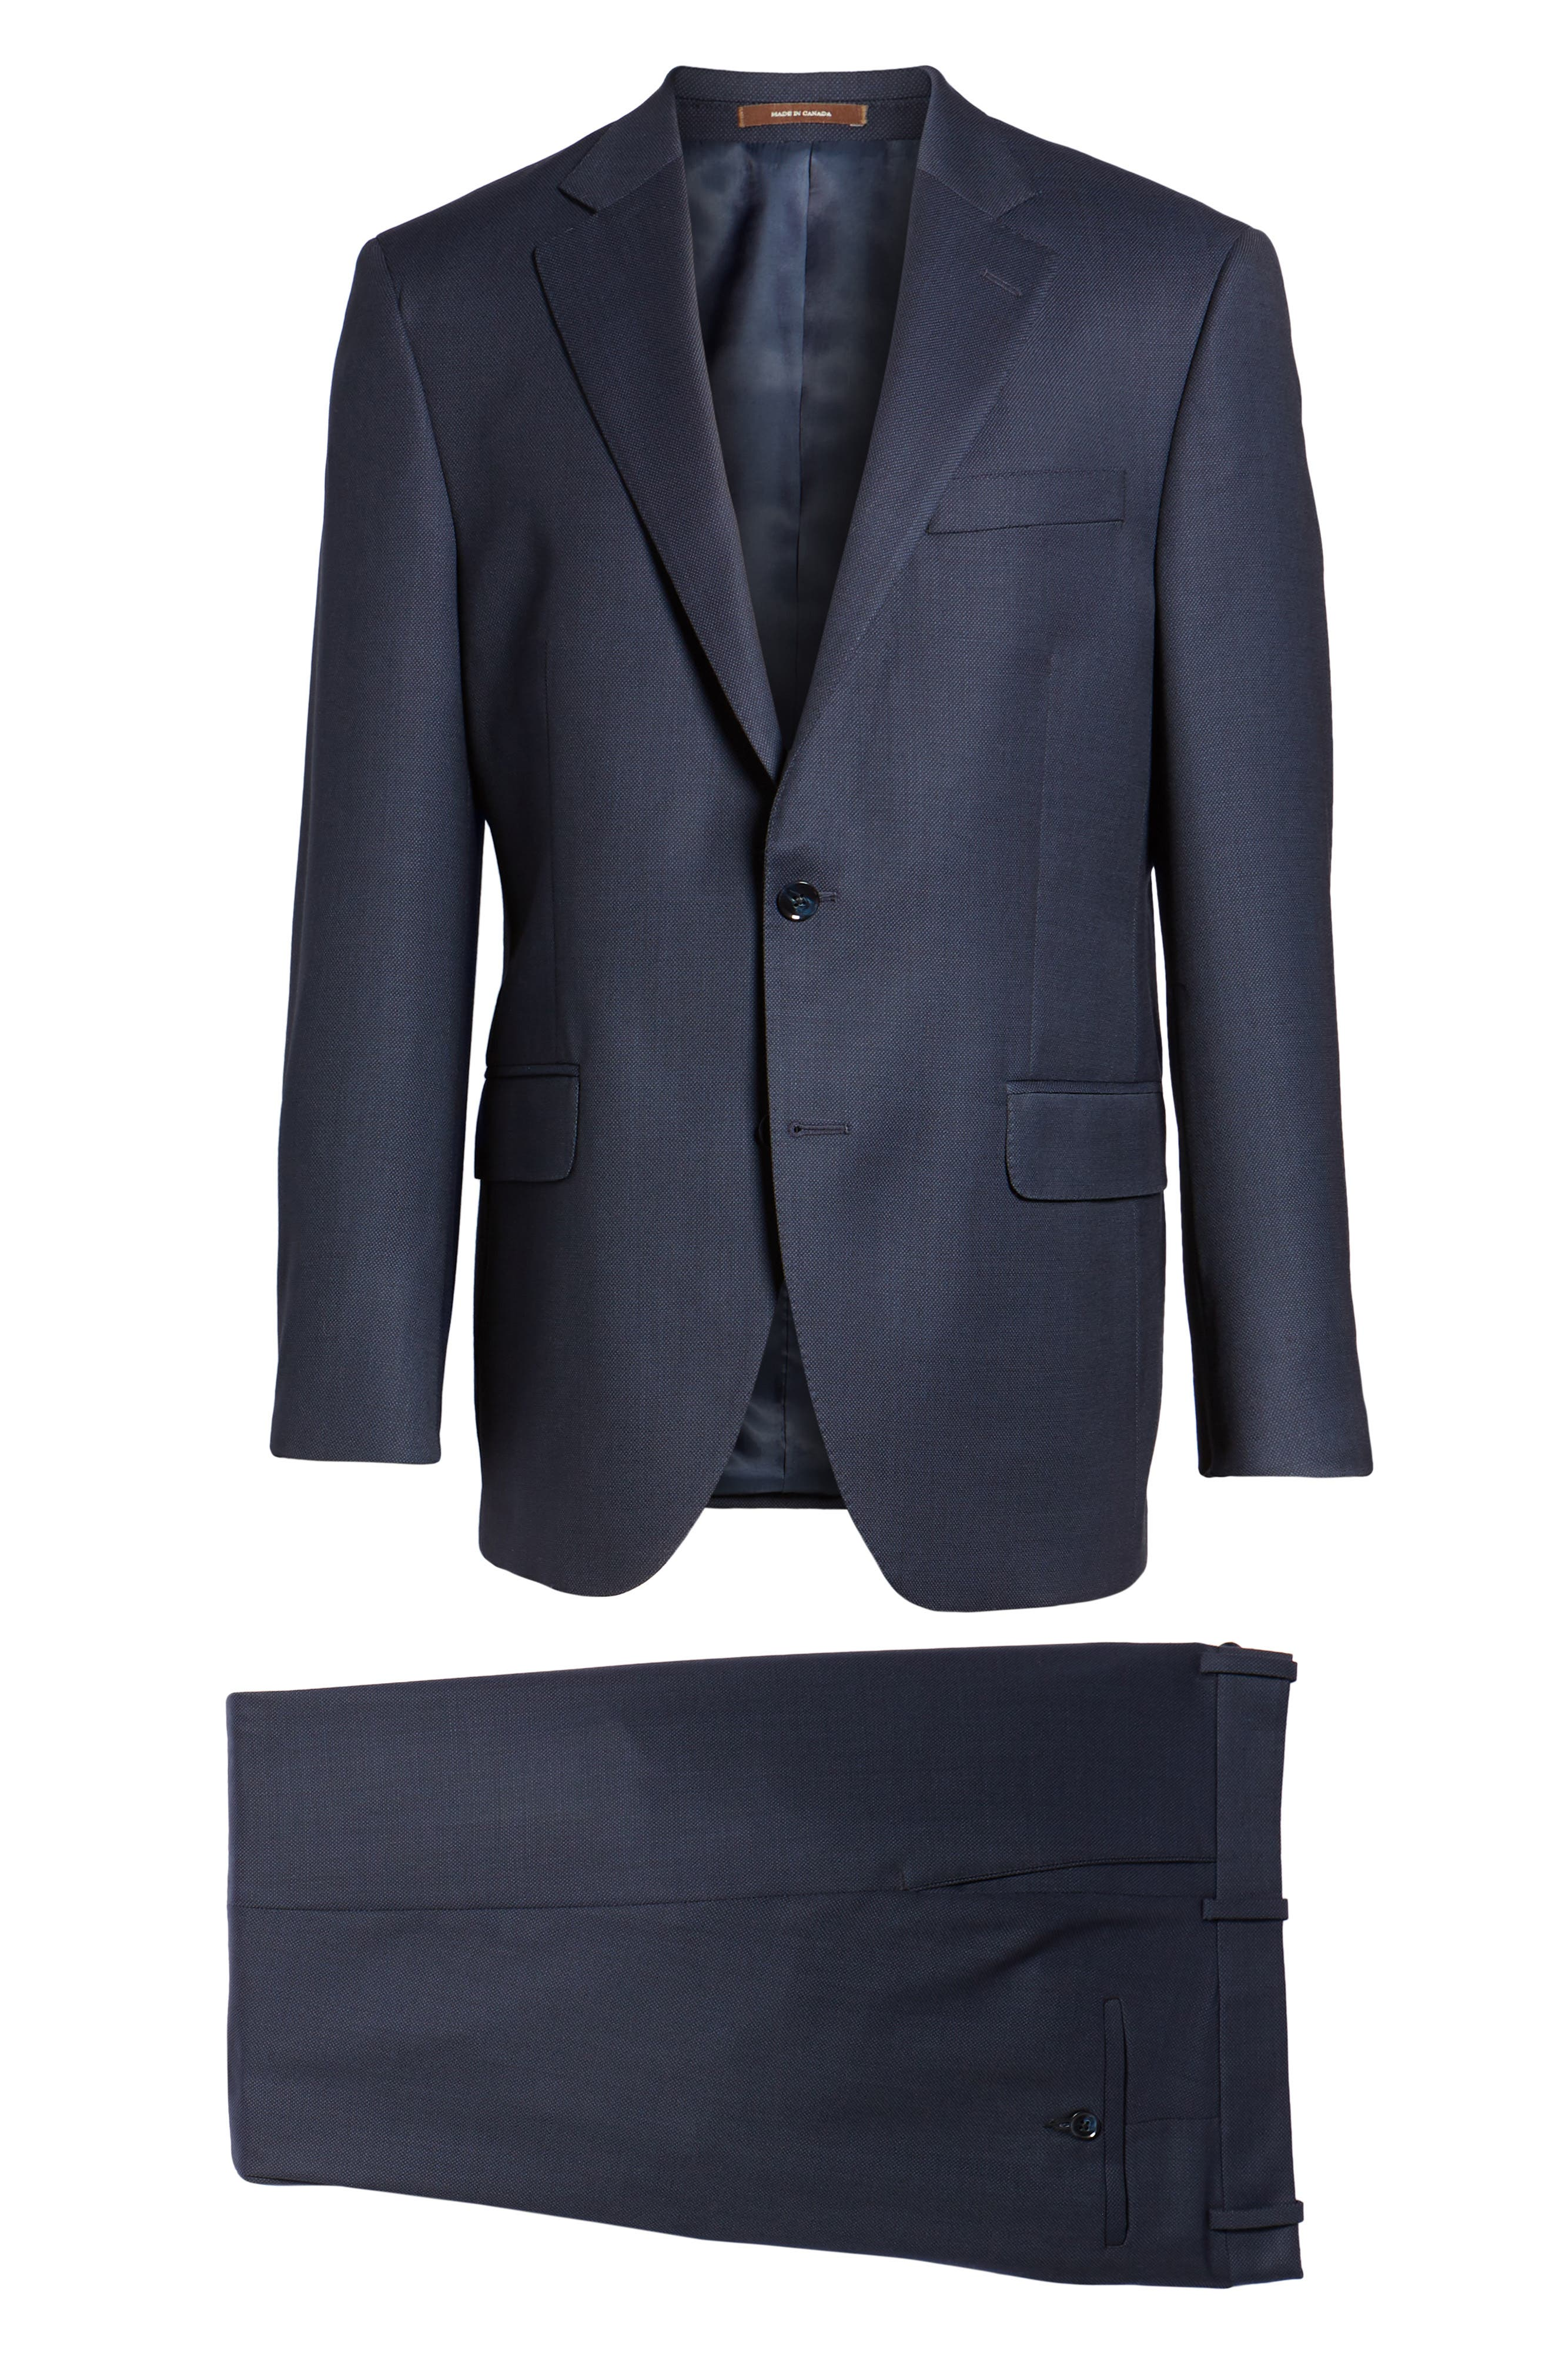 Classic Fit Bird's Eye Wool Suit,                             Alternate thumbnail 8, color,                             Navy